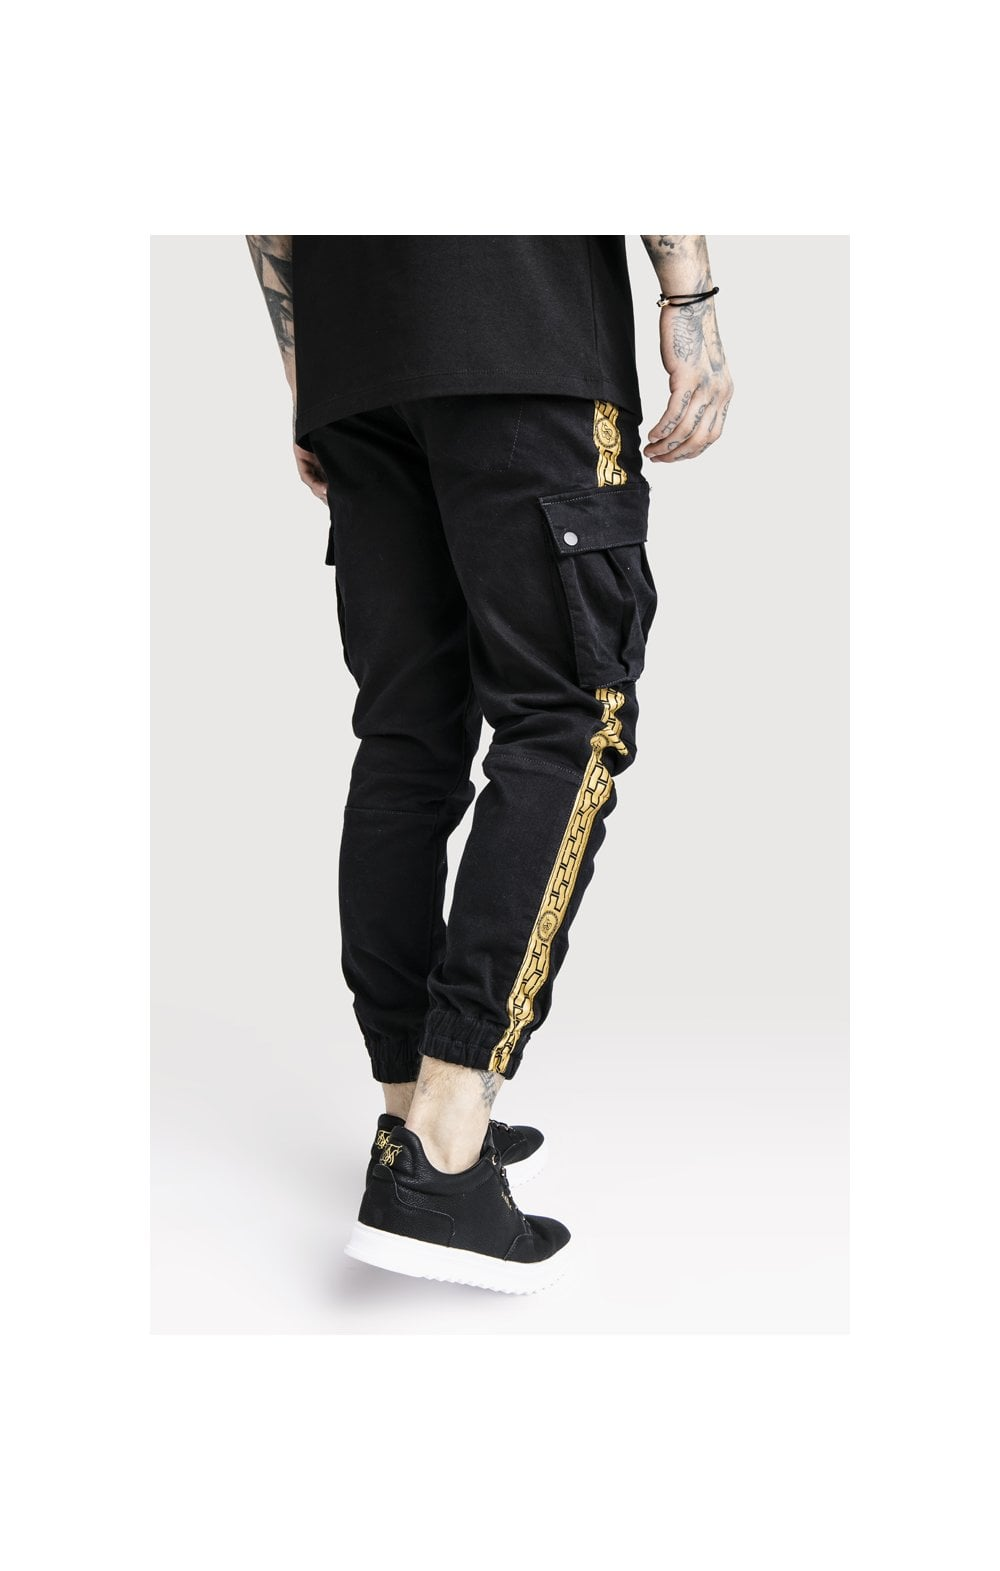 Load image into Gallery viewer, SikSilk x Dani Alves Cargo Pants - Black (3)